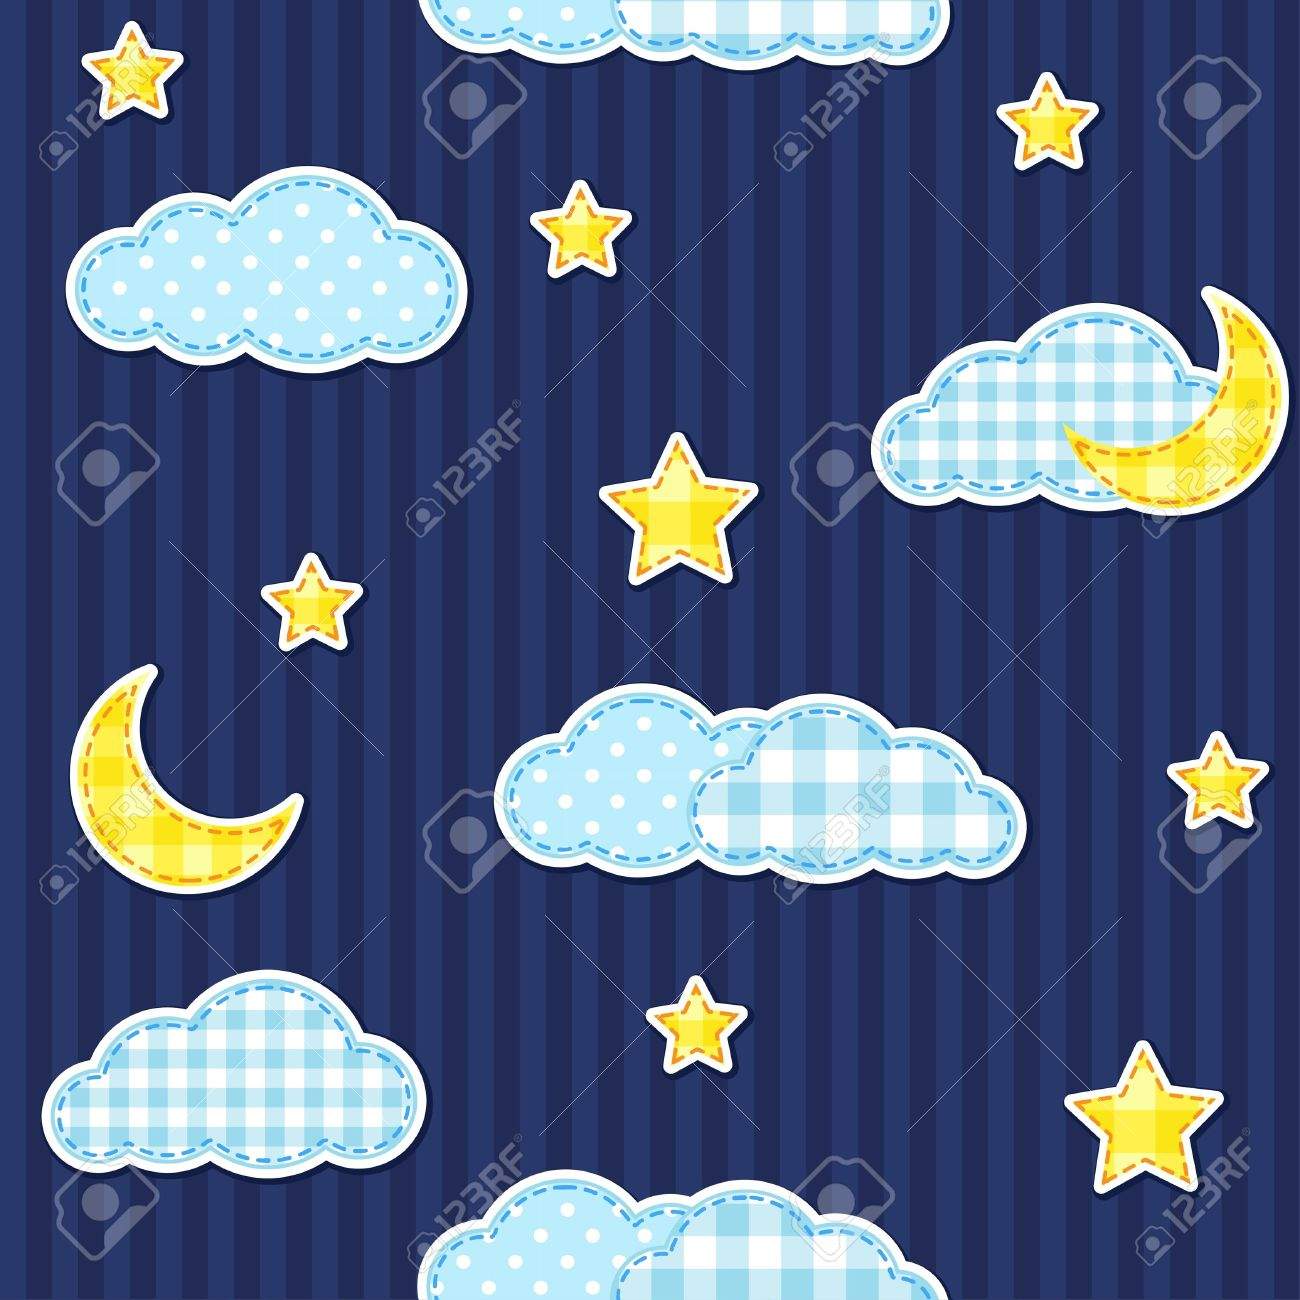 Night sky seamless pattern Stock Vector - 14714605